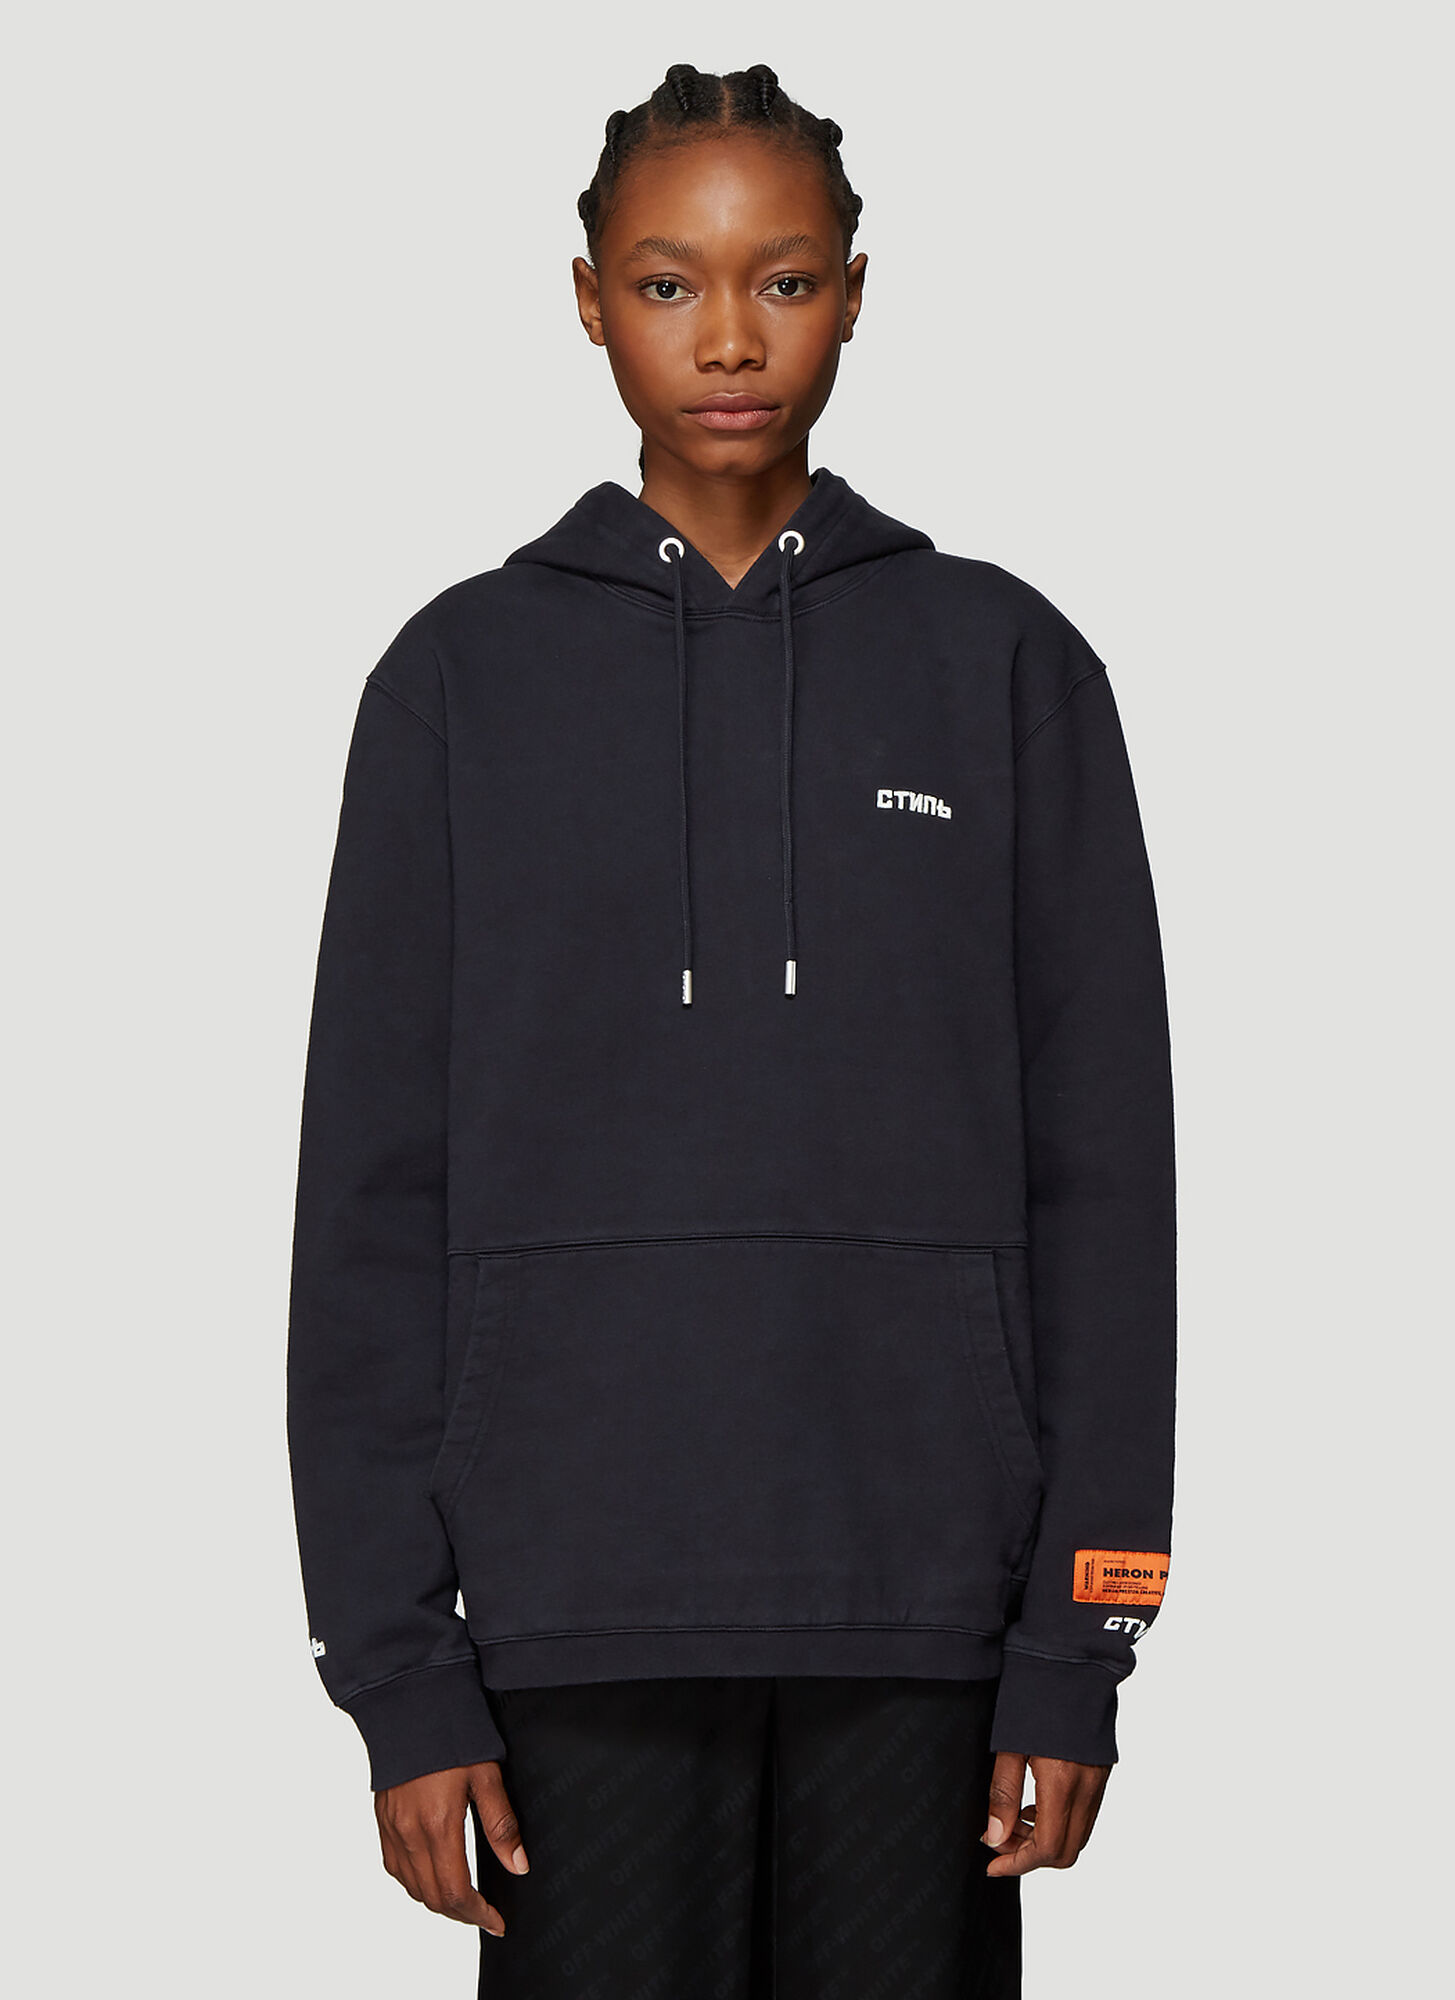 Heron Preston ????? Embroidered Hooded Sweatshirt in Black